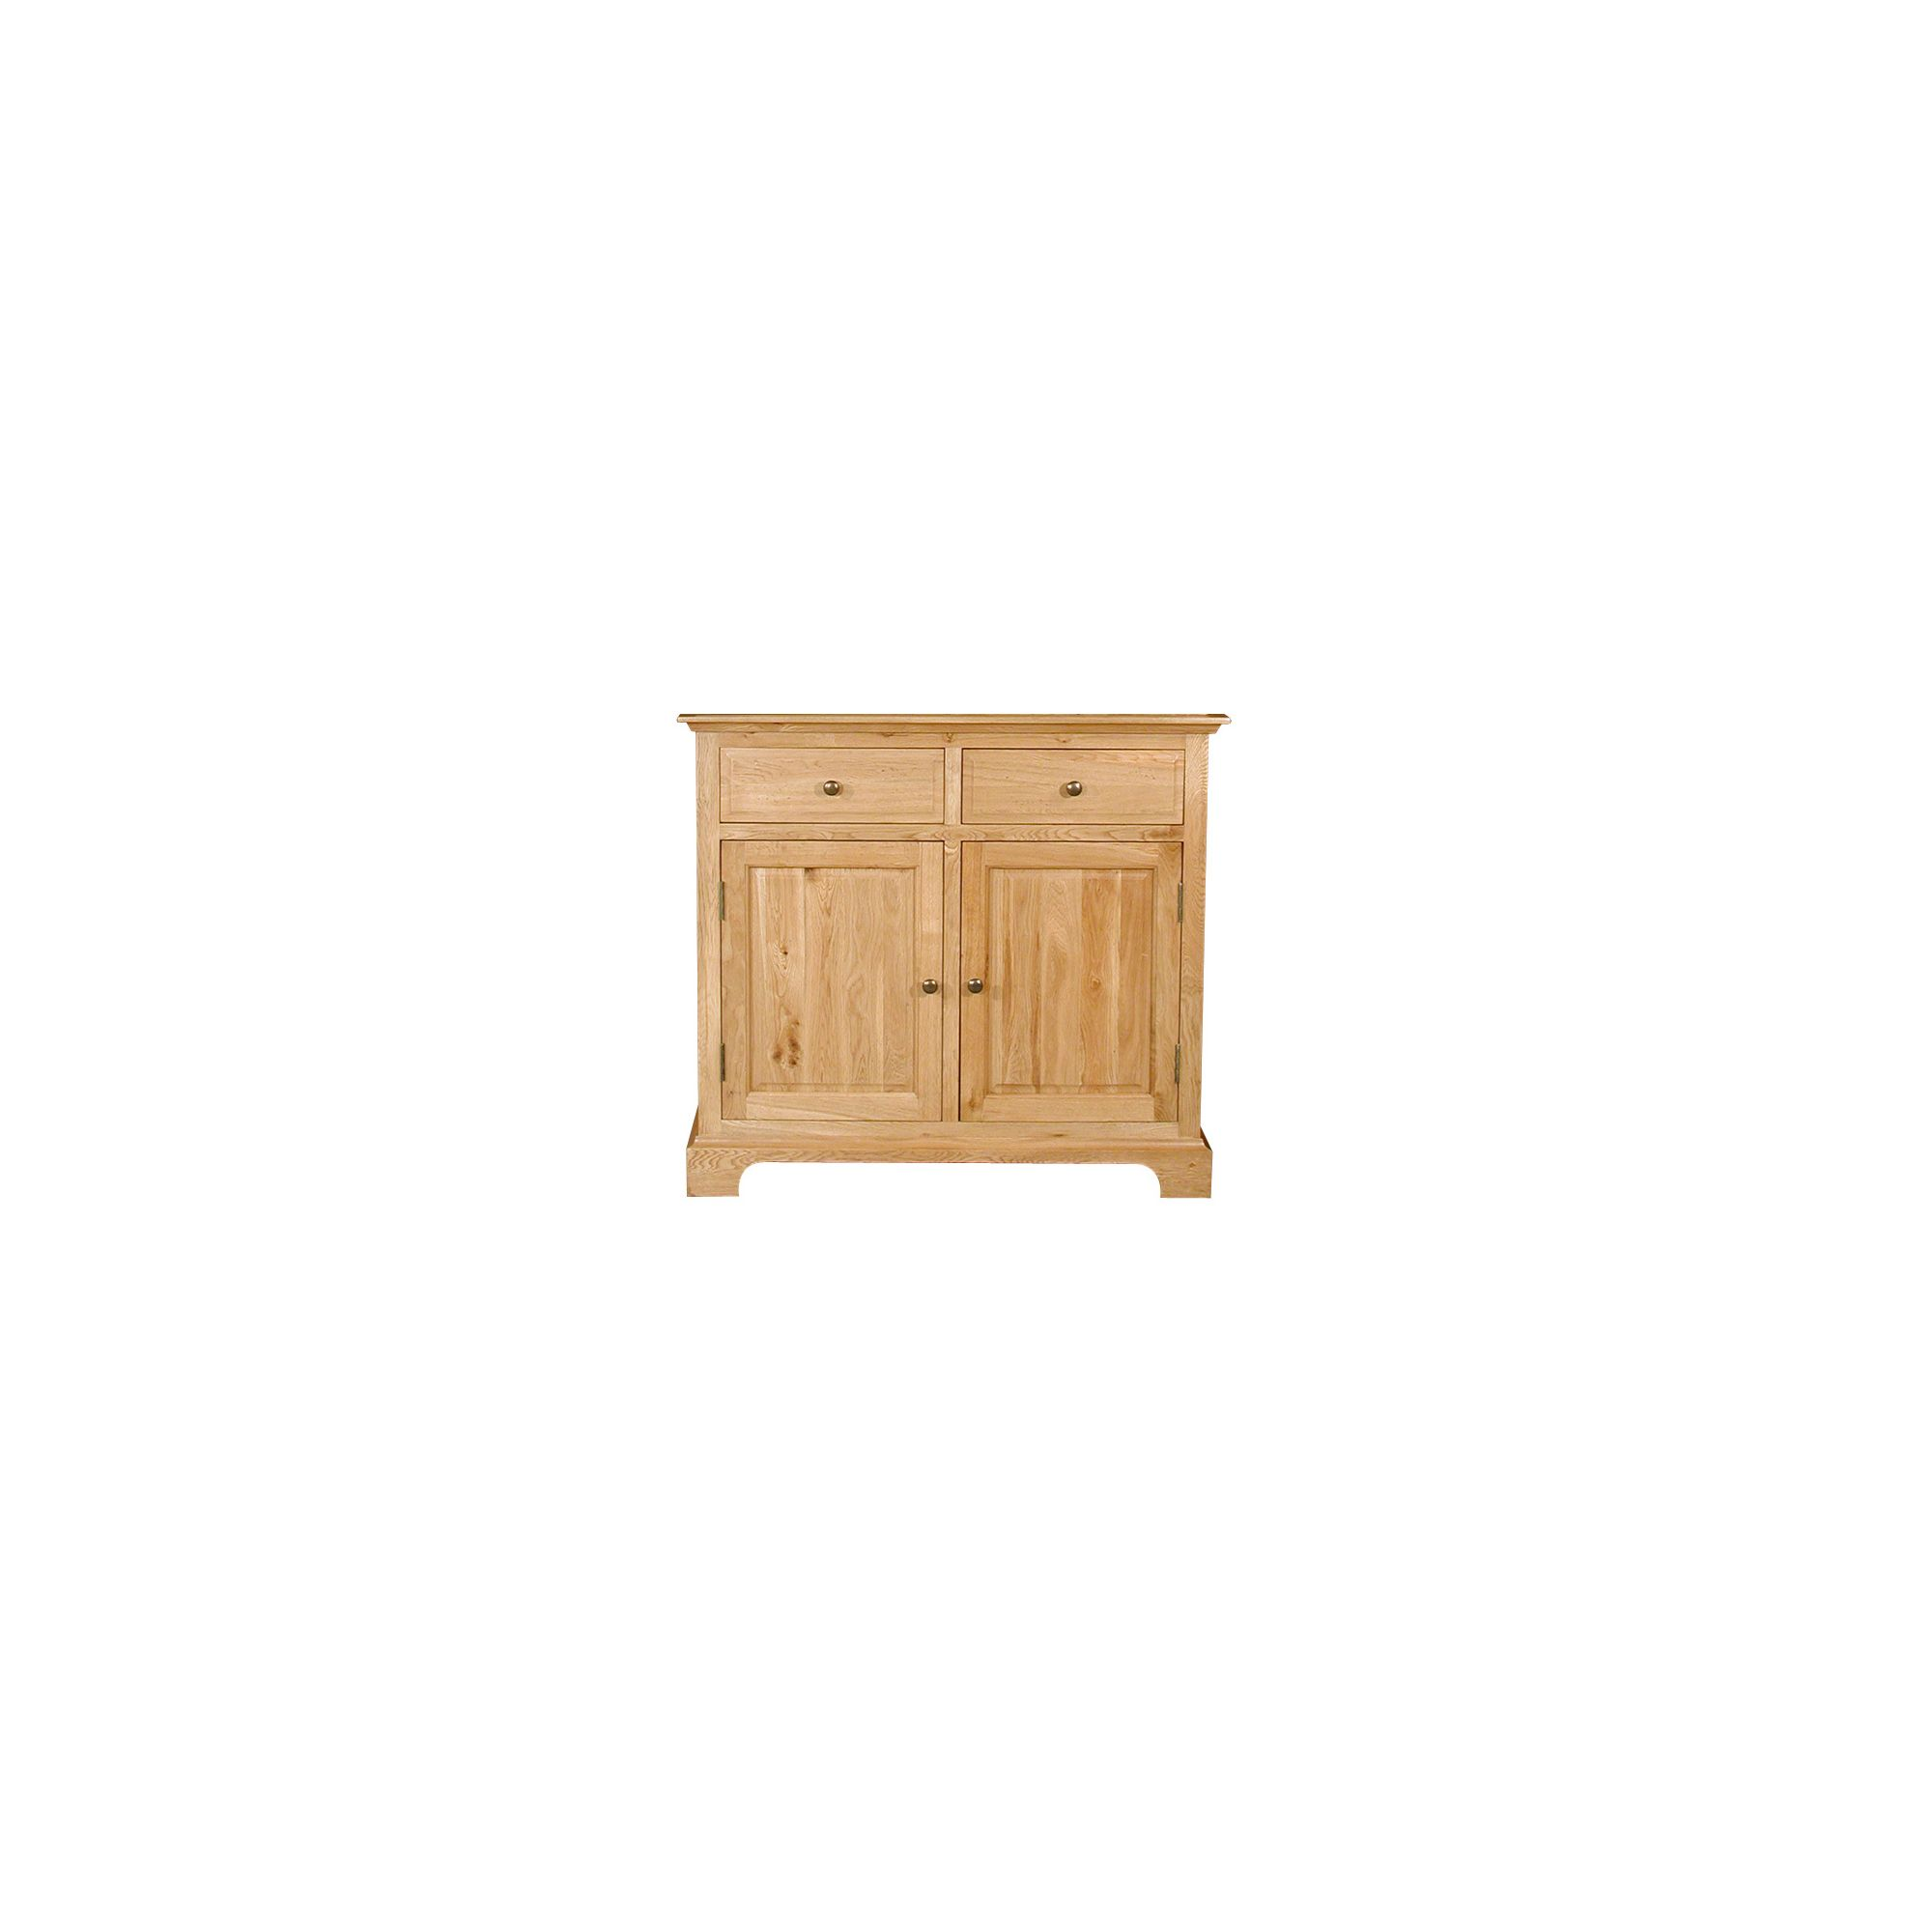 Alterton Furniture Yorke Oak Glazed Sideboard at Tesco Direct